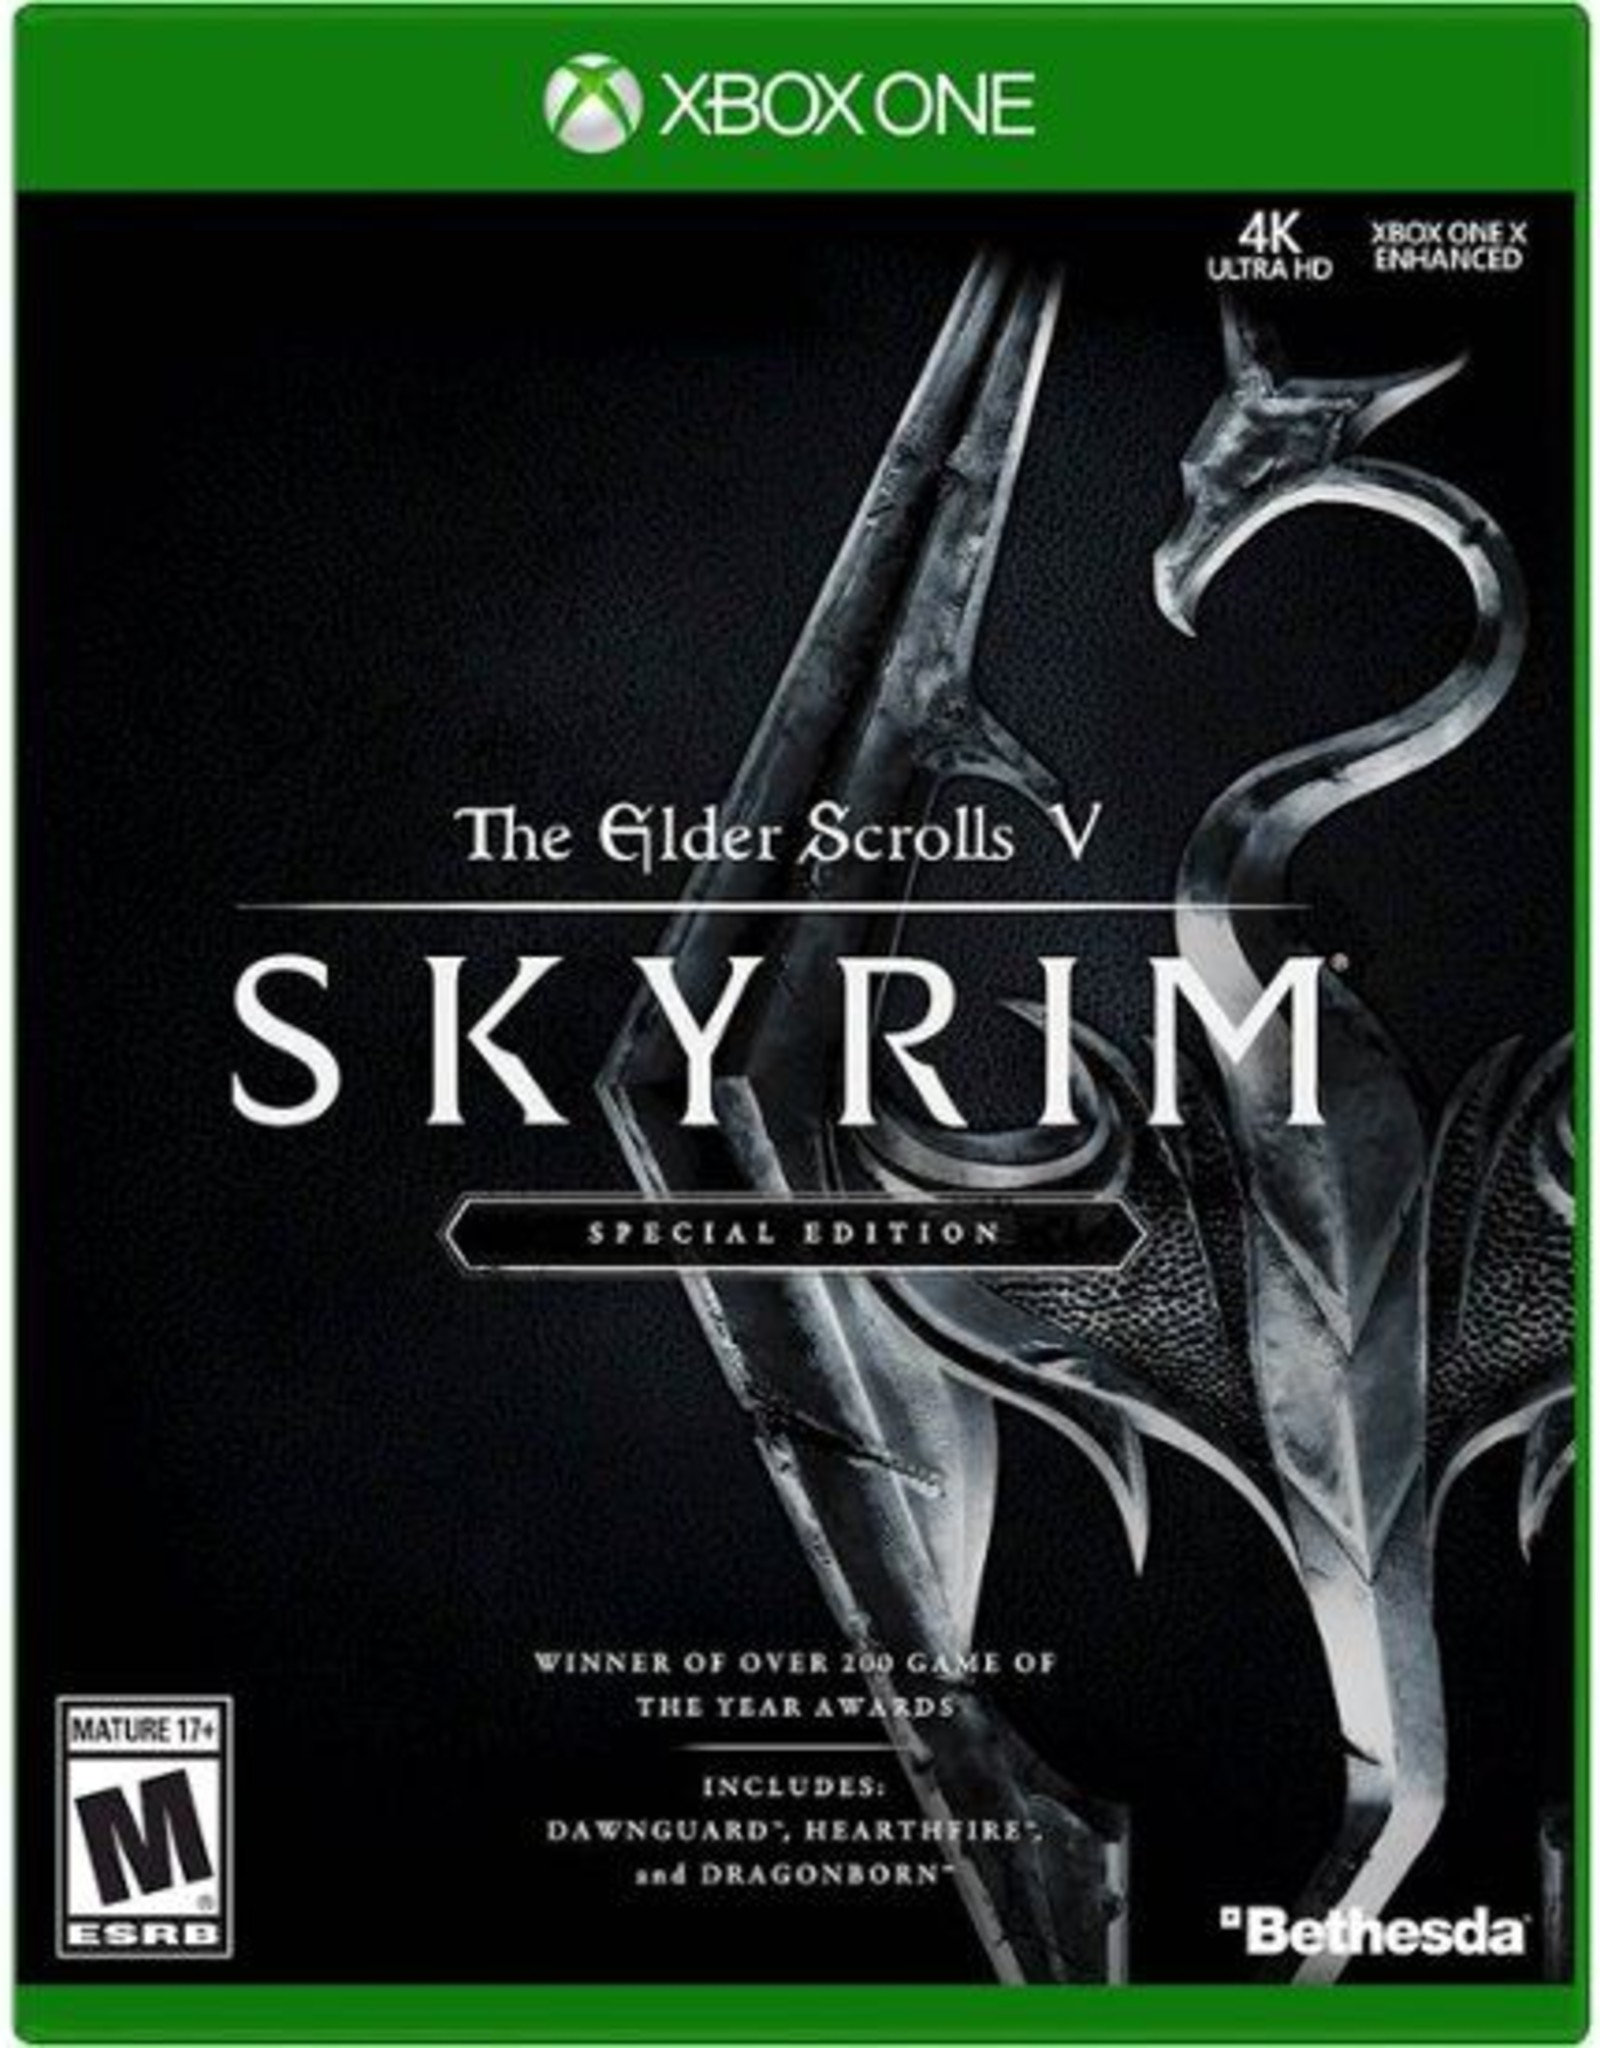 The Elder Scrolls V: Skyrim Special Edition- XBOne DIGITAL